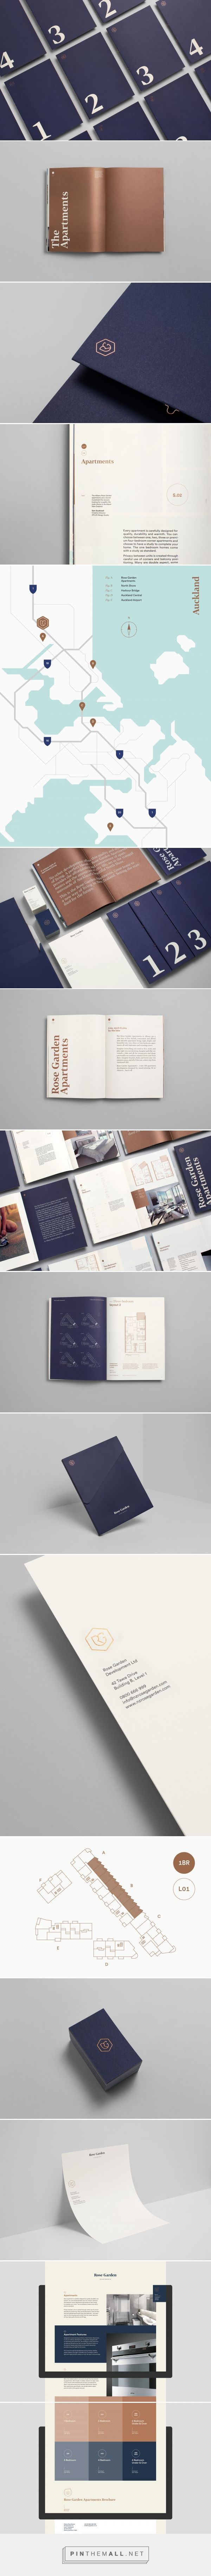 Studio South... - a grouped images picture - Pin Them All